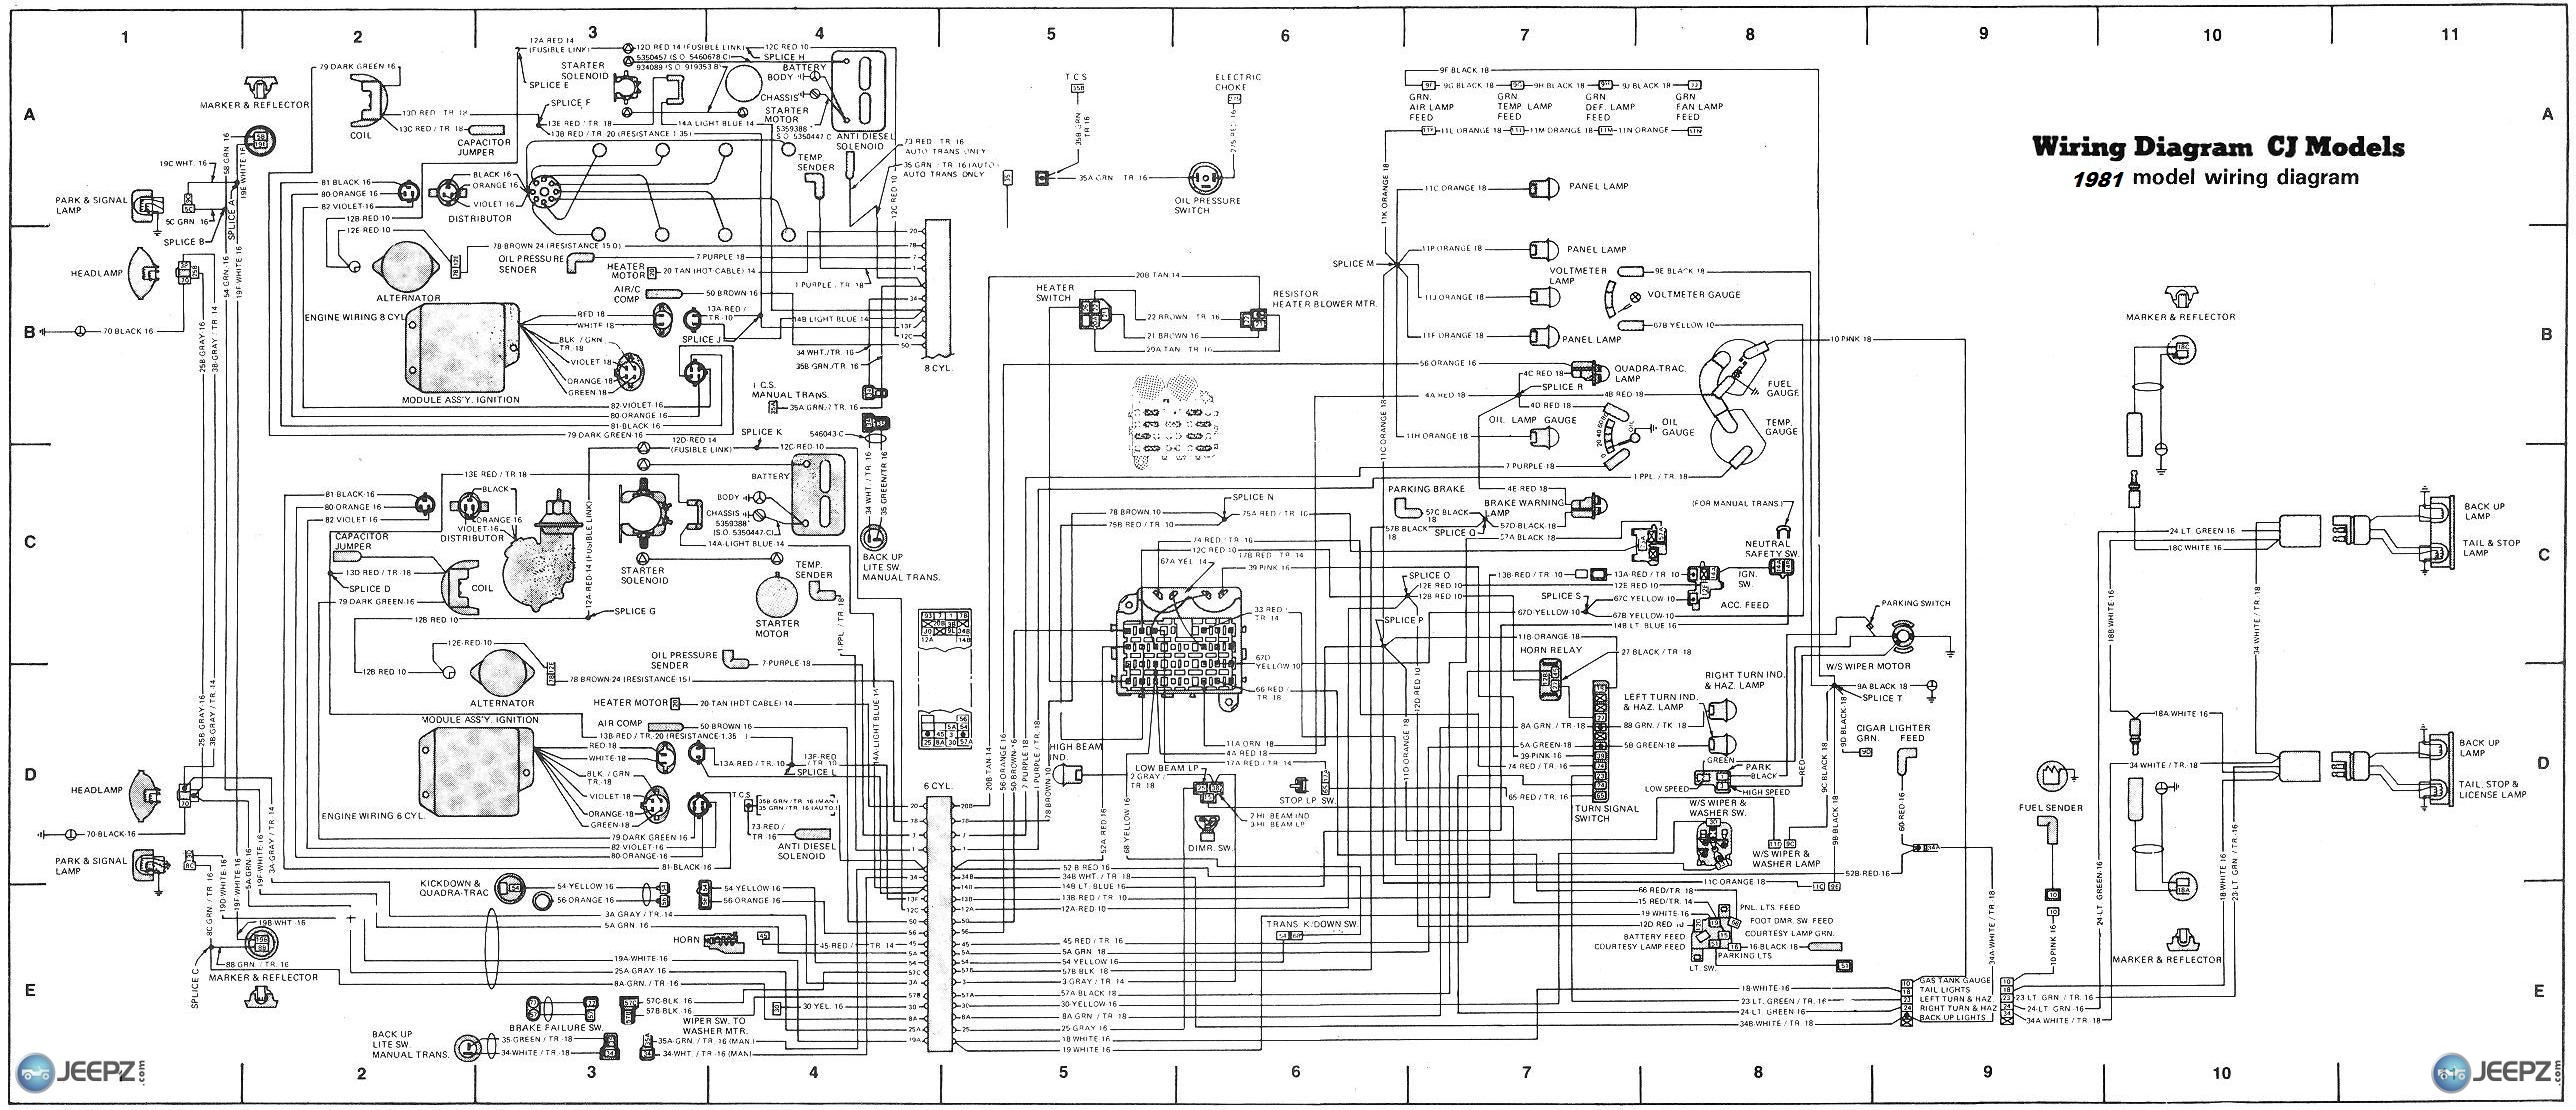 7993d1301845049 cj 7 wire diagram cj wiring diagram 1981?resized665%2C2876ssld1 opel corsa b wiring schematic efcaviation com vauxhall zafira fuse box diagram at reclaimingppi.co